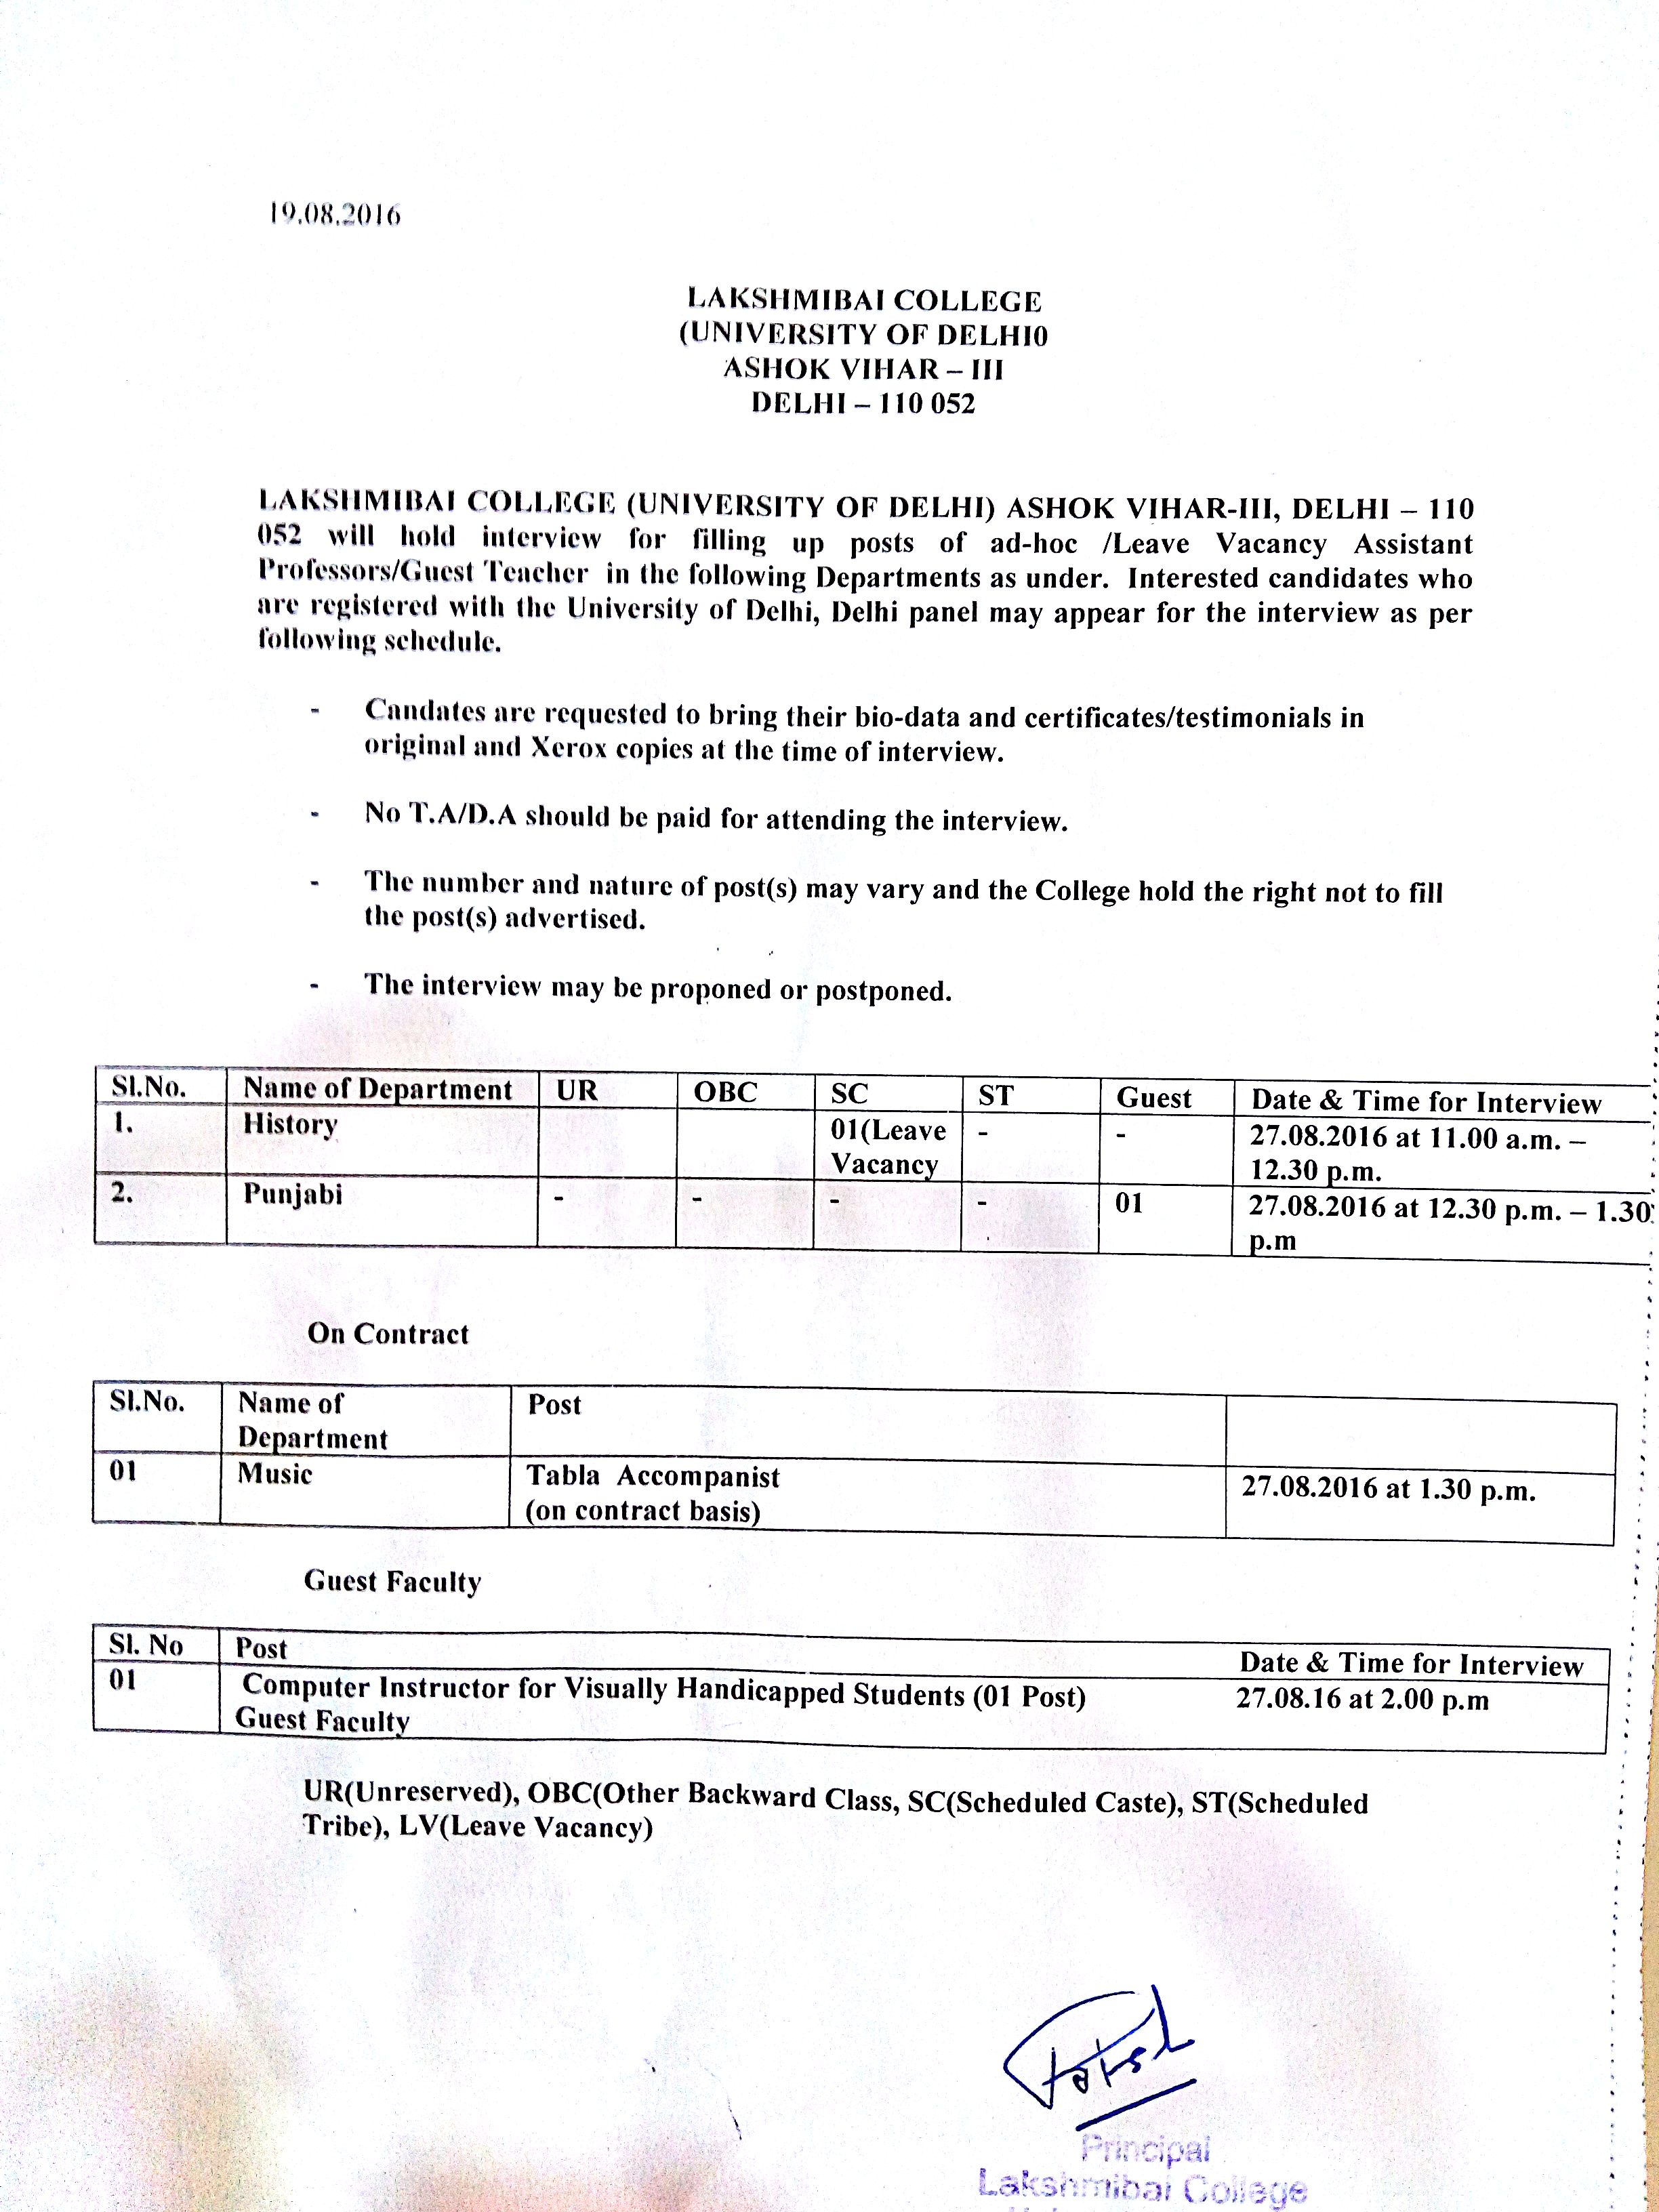 welcome to lakshmibai college interview for ad hoc guest teacher